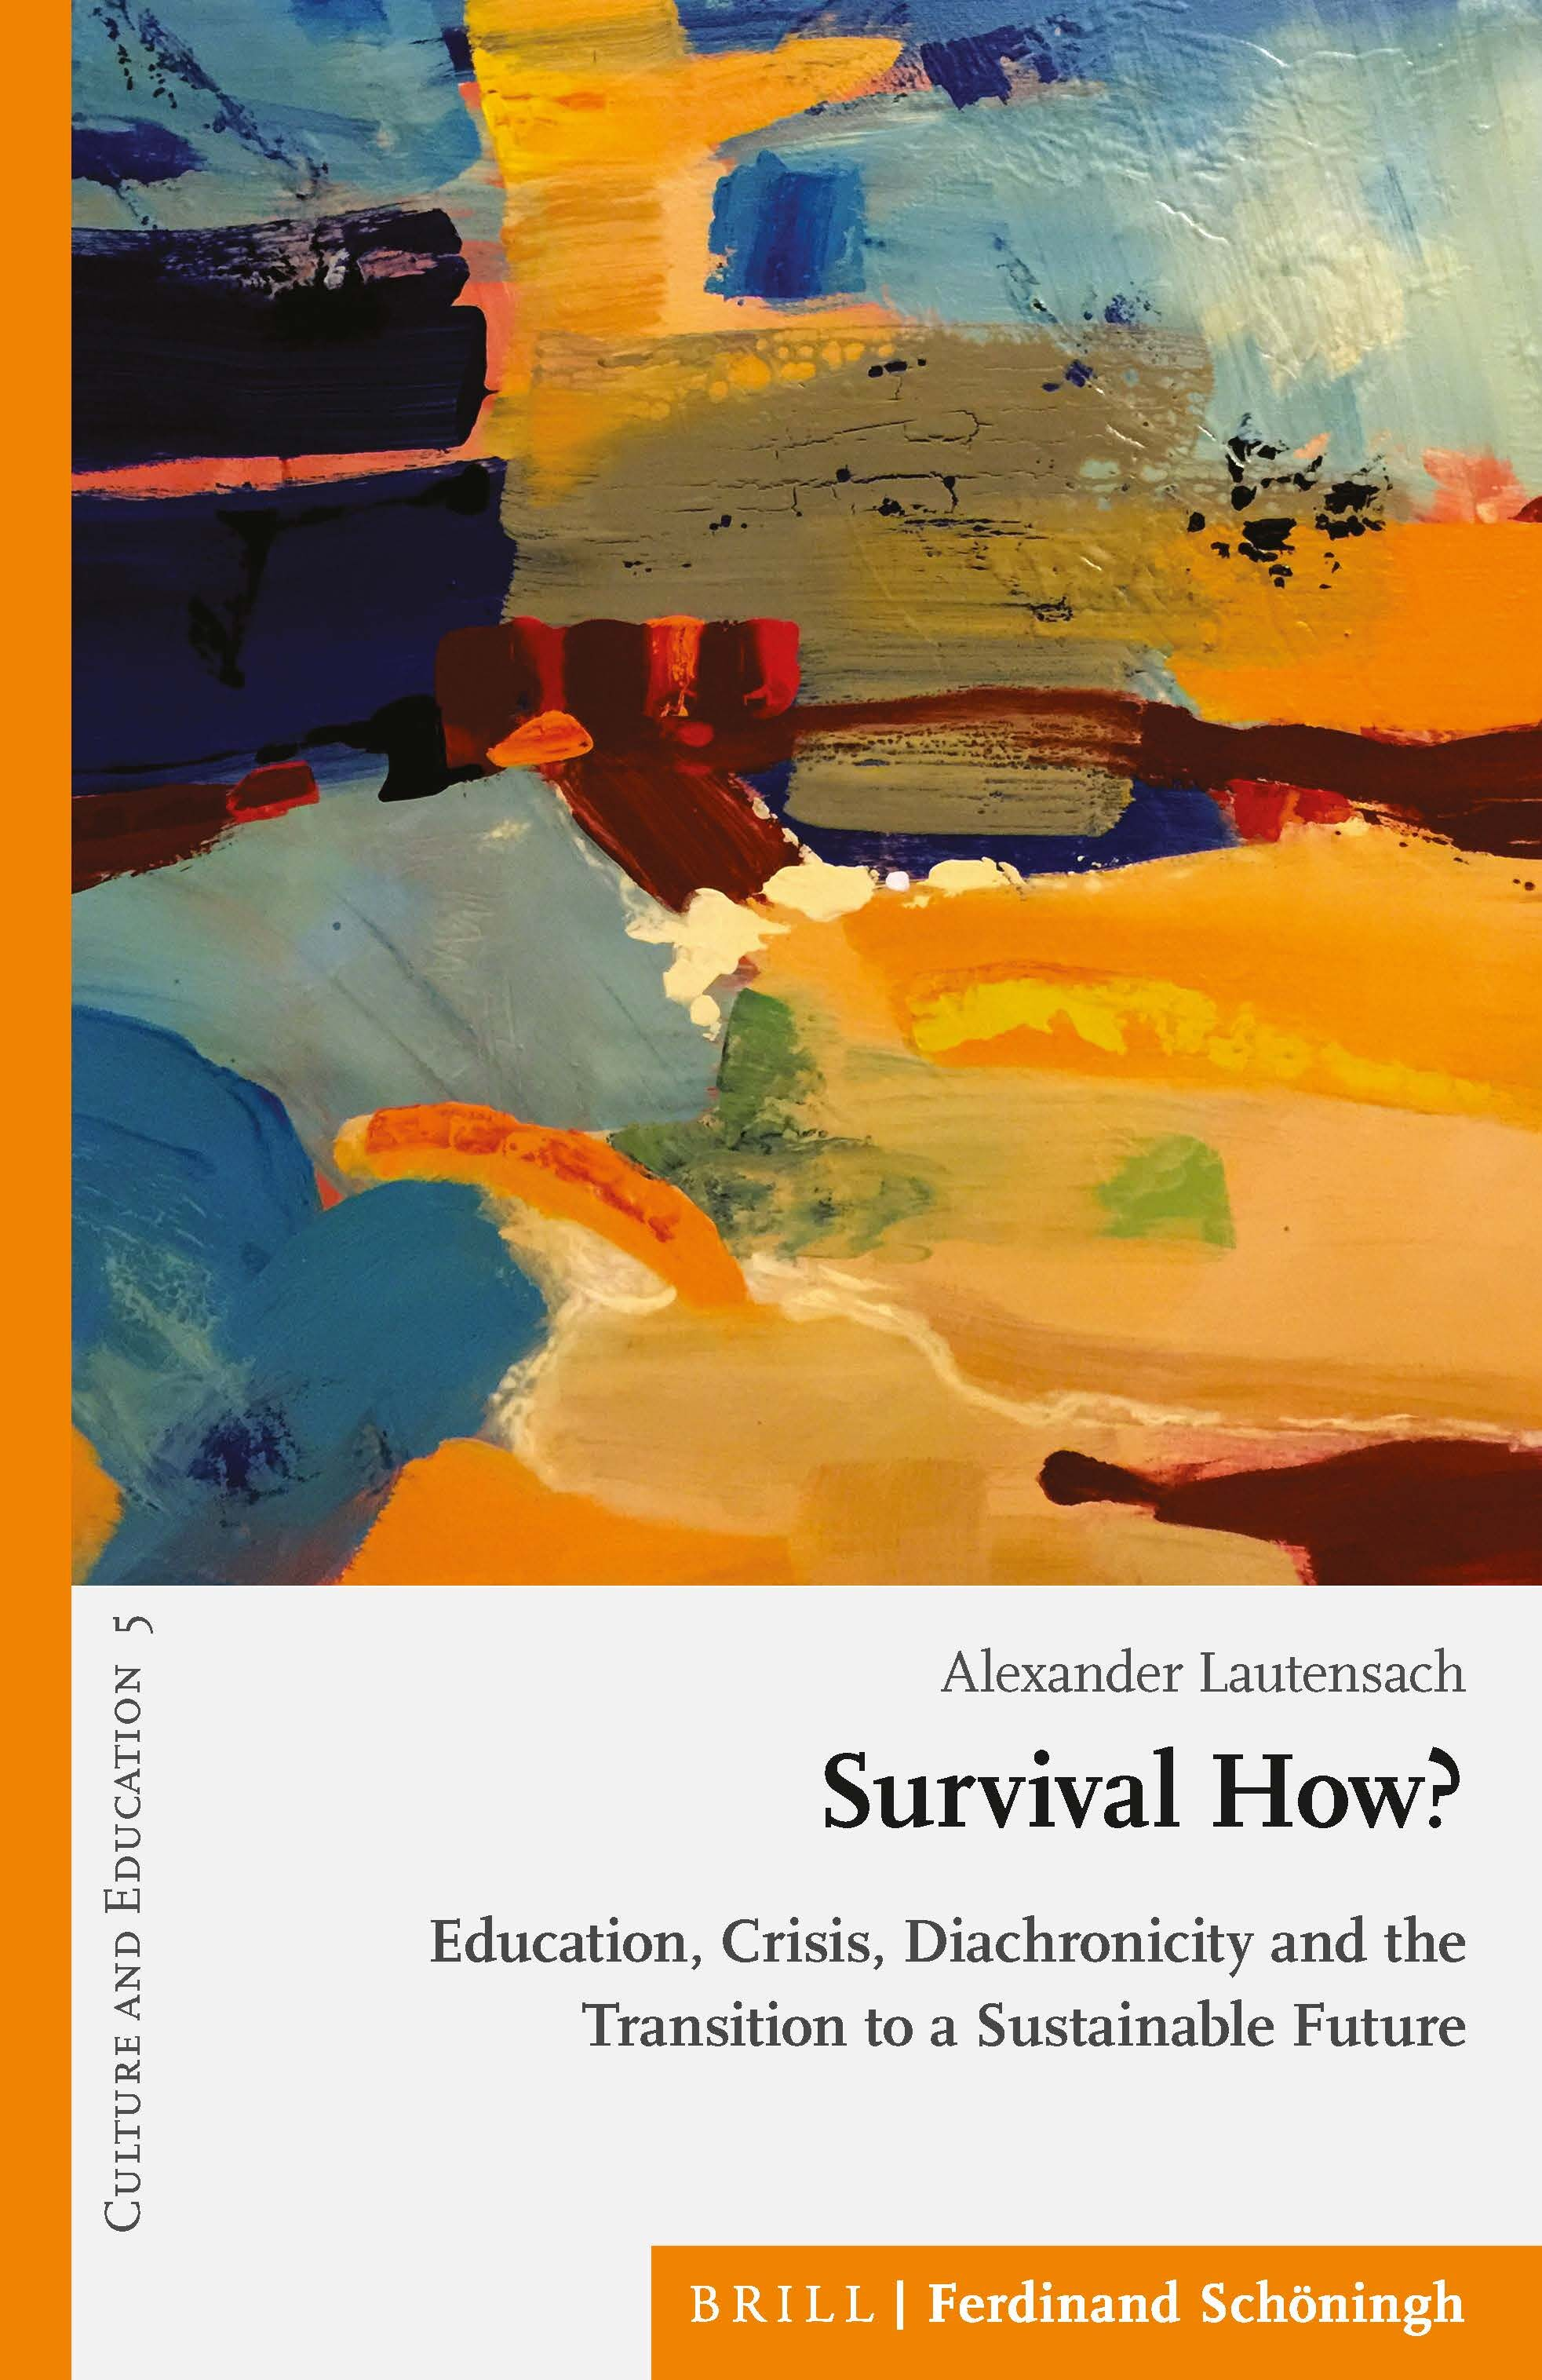 Chapter 15 Educating as if Sustainability Mattered in Survival How